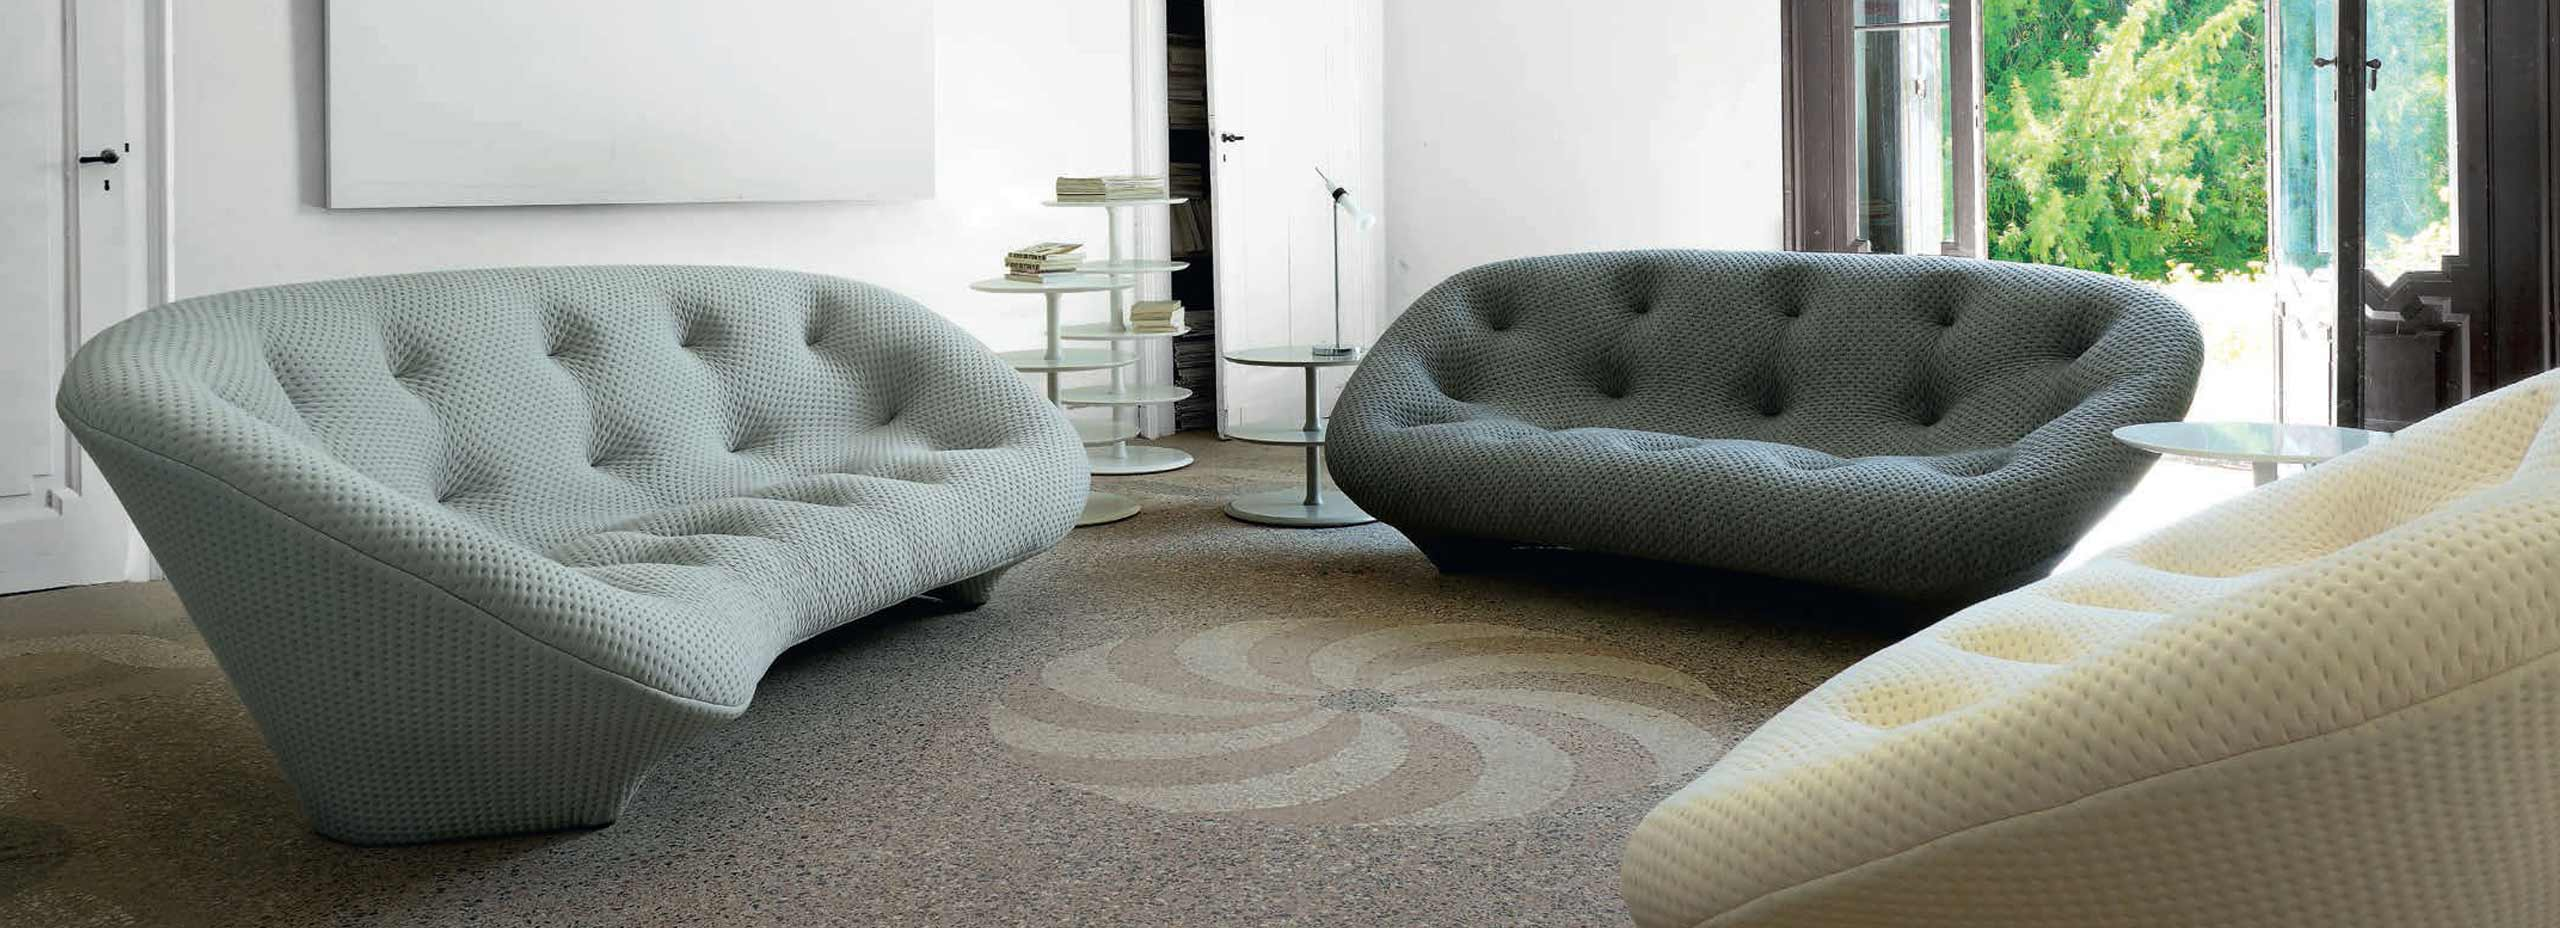 stunning ligne roset marseille plan de campagne avignon nmes arles with tapis ligne roset. Black Bedroom Furniture Sets. Home Design Ideas